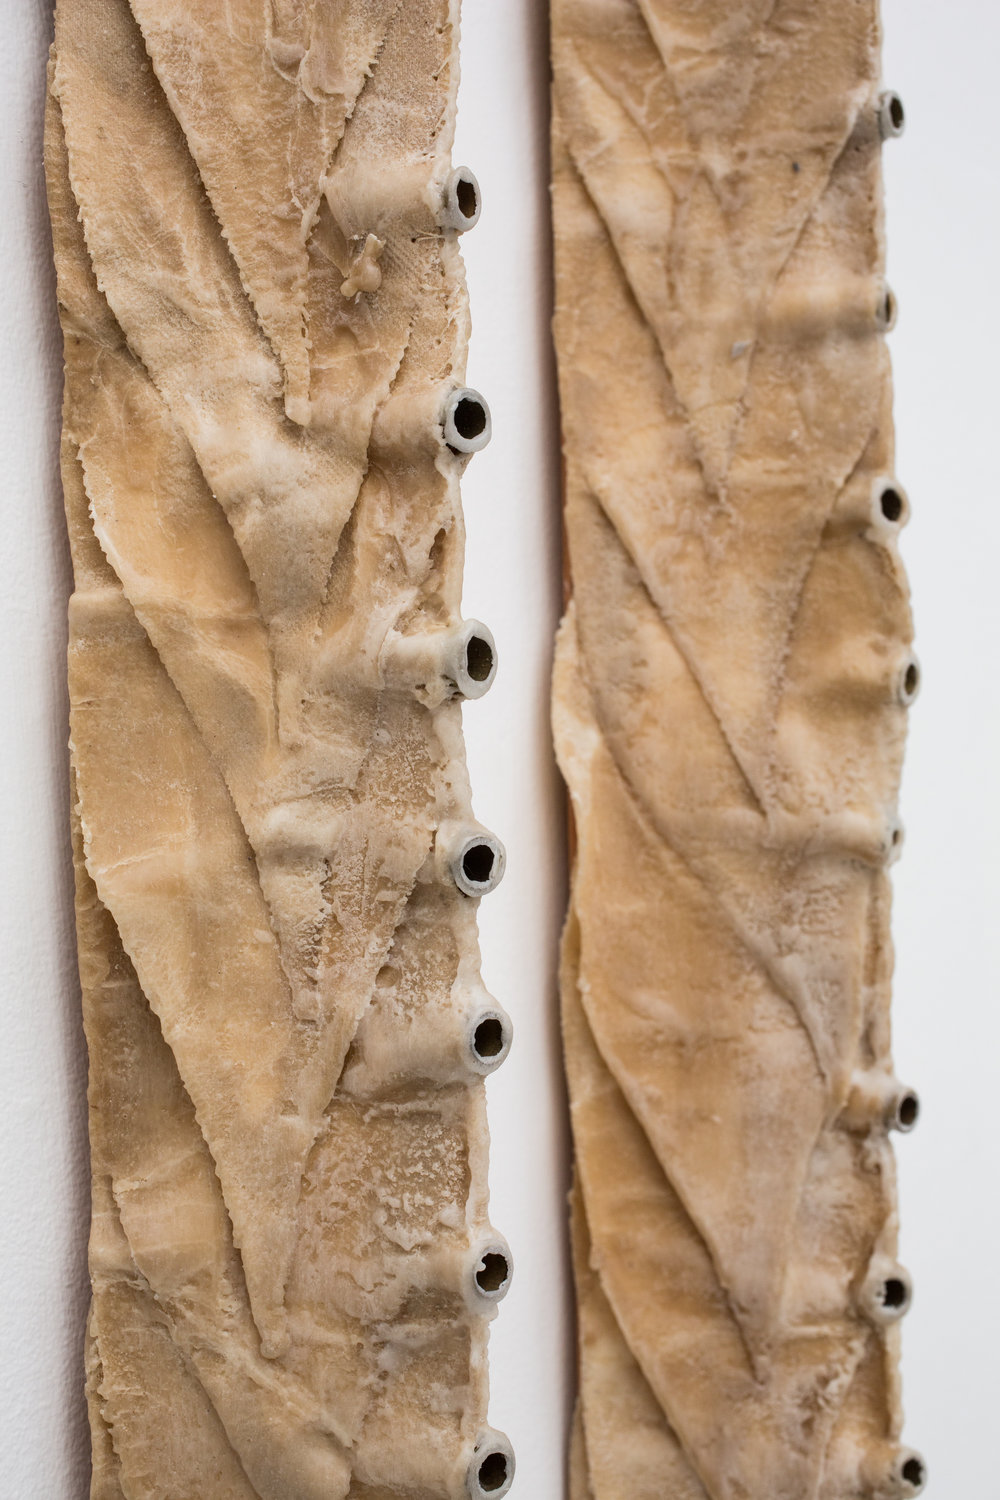 "Demeter Does the Math (and Cries), 2000, (detail), Waxed cloth, shell casings, thread, wood, 80"" x 4"" x 3.5"" (13 units)"